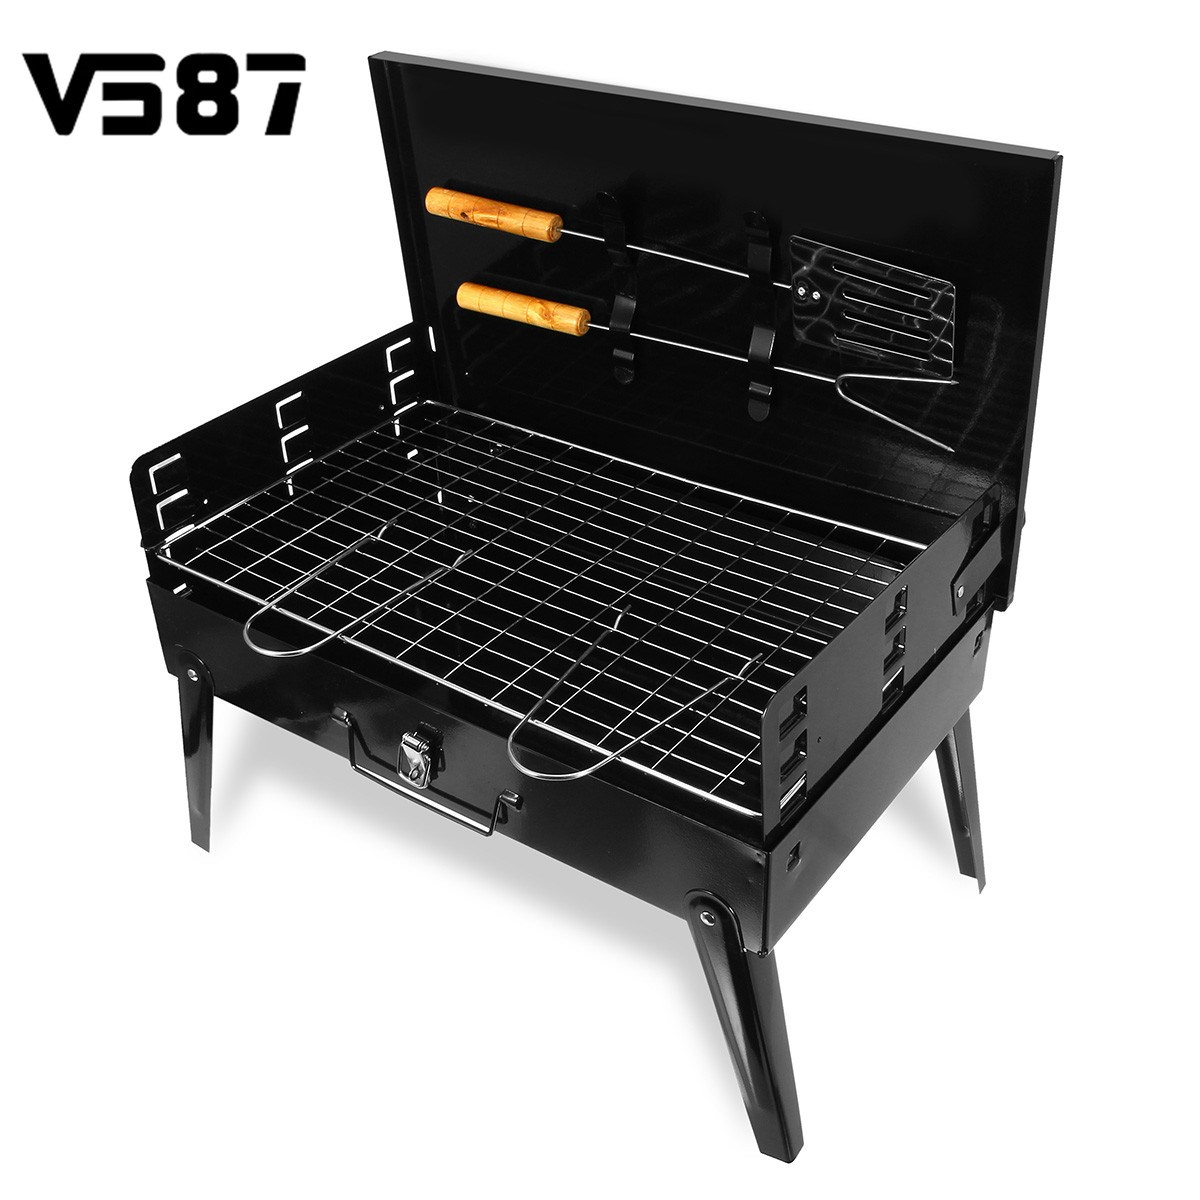 Grill Camping Us 10 55 49 Off Portable Bbq Barbecue Grill Folding Camping Charcoal Stove Garden Tools Outdoor Kitchen Cooking Accessories Adjustable Cookware In